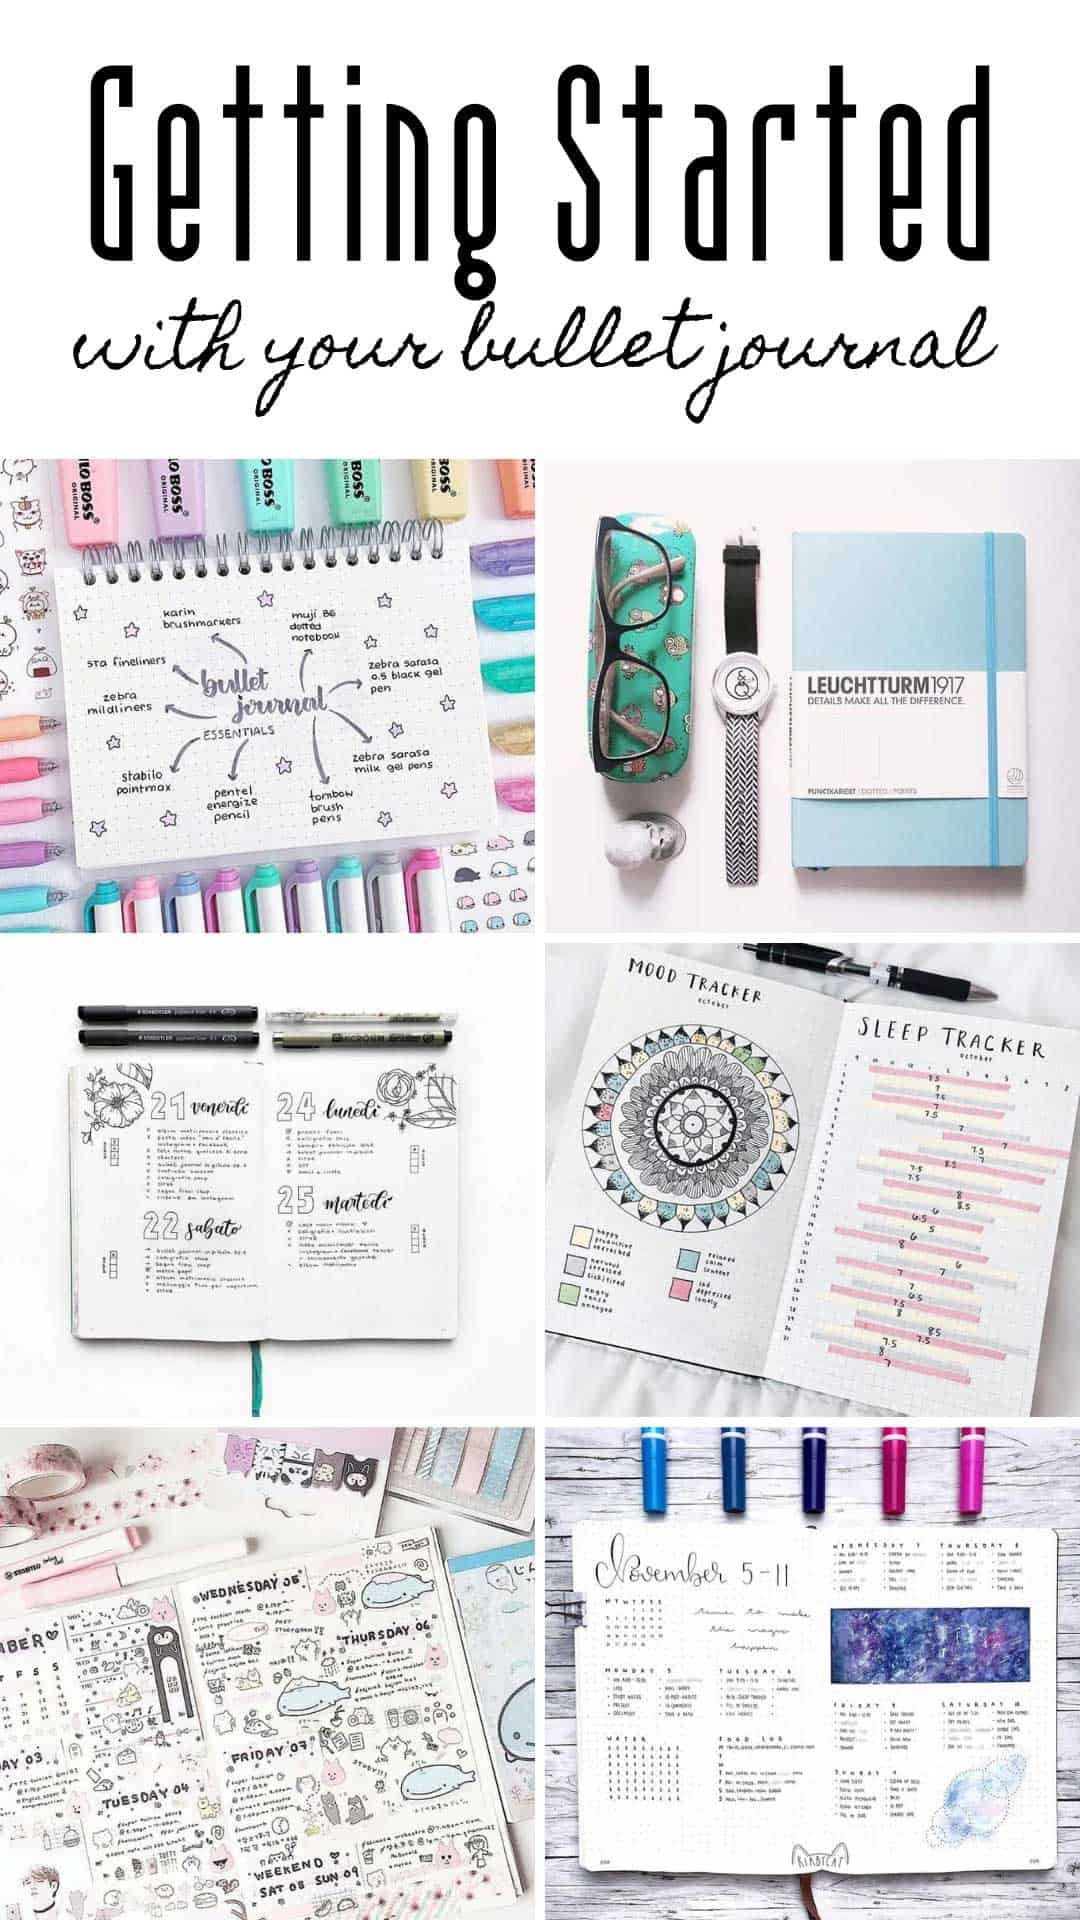 Wondering how to bullet journal? Check out this guide which will walk you through the set up step-by-step! If you're looking for bullet journal ideas for 2019 they're all here! #bulletjournal